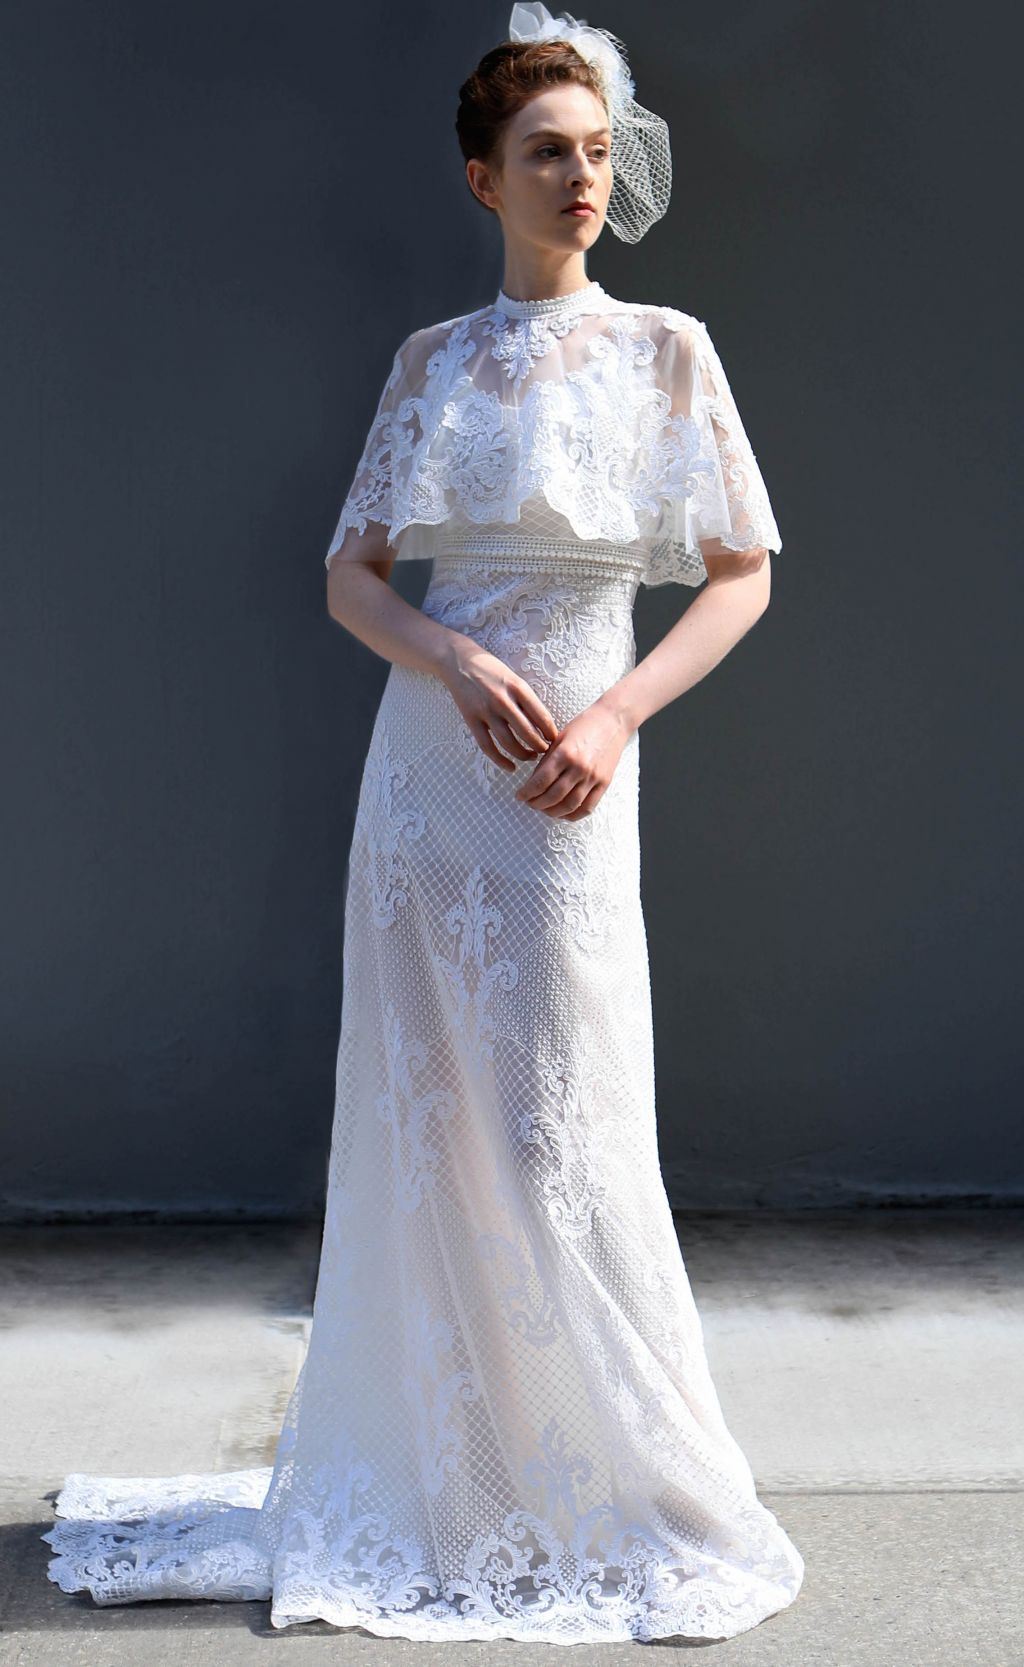 Luxury Wedding Dress With Short Attached Cape